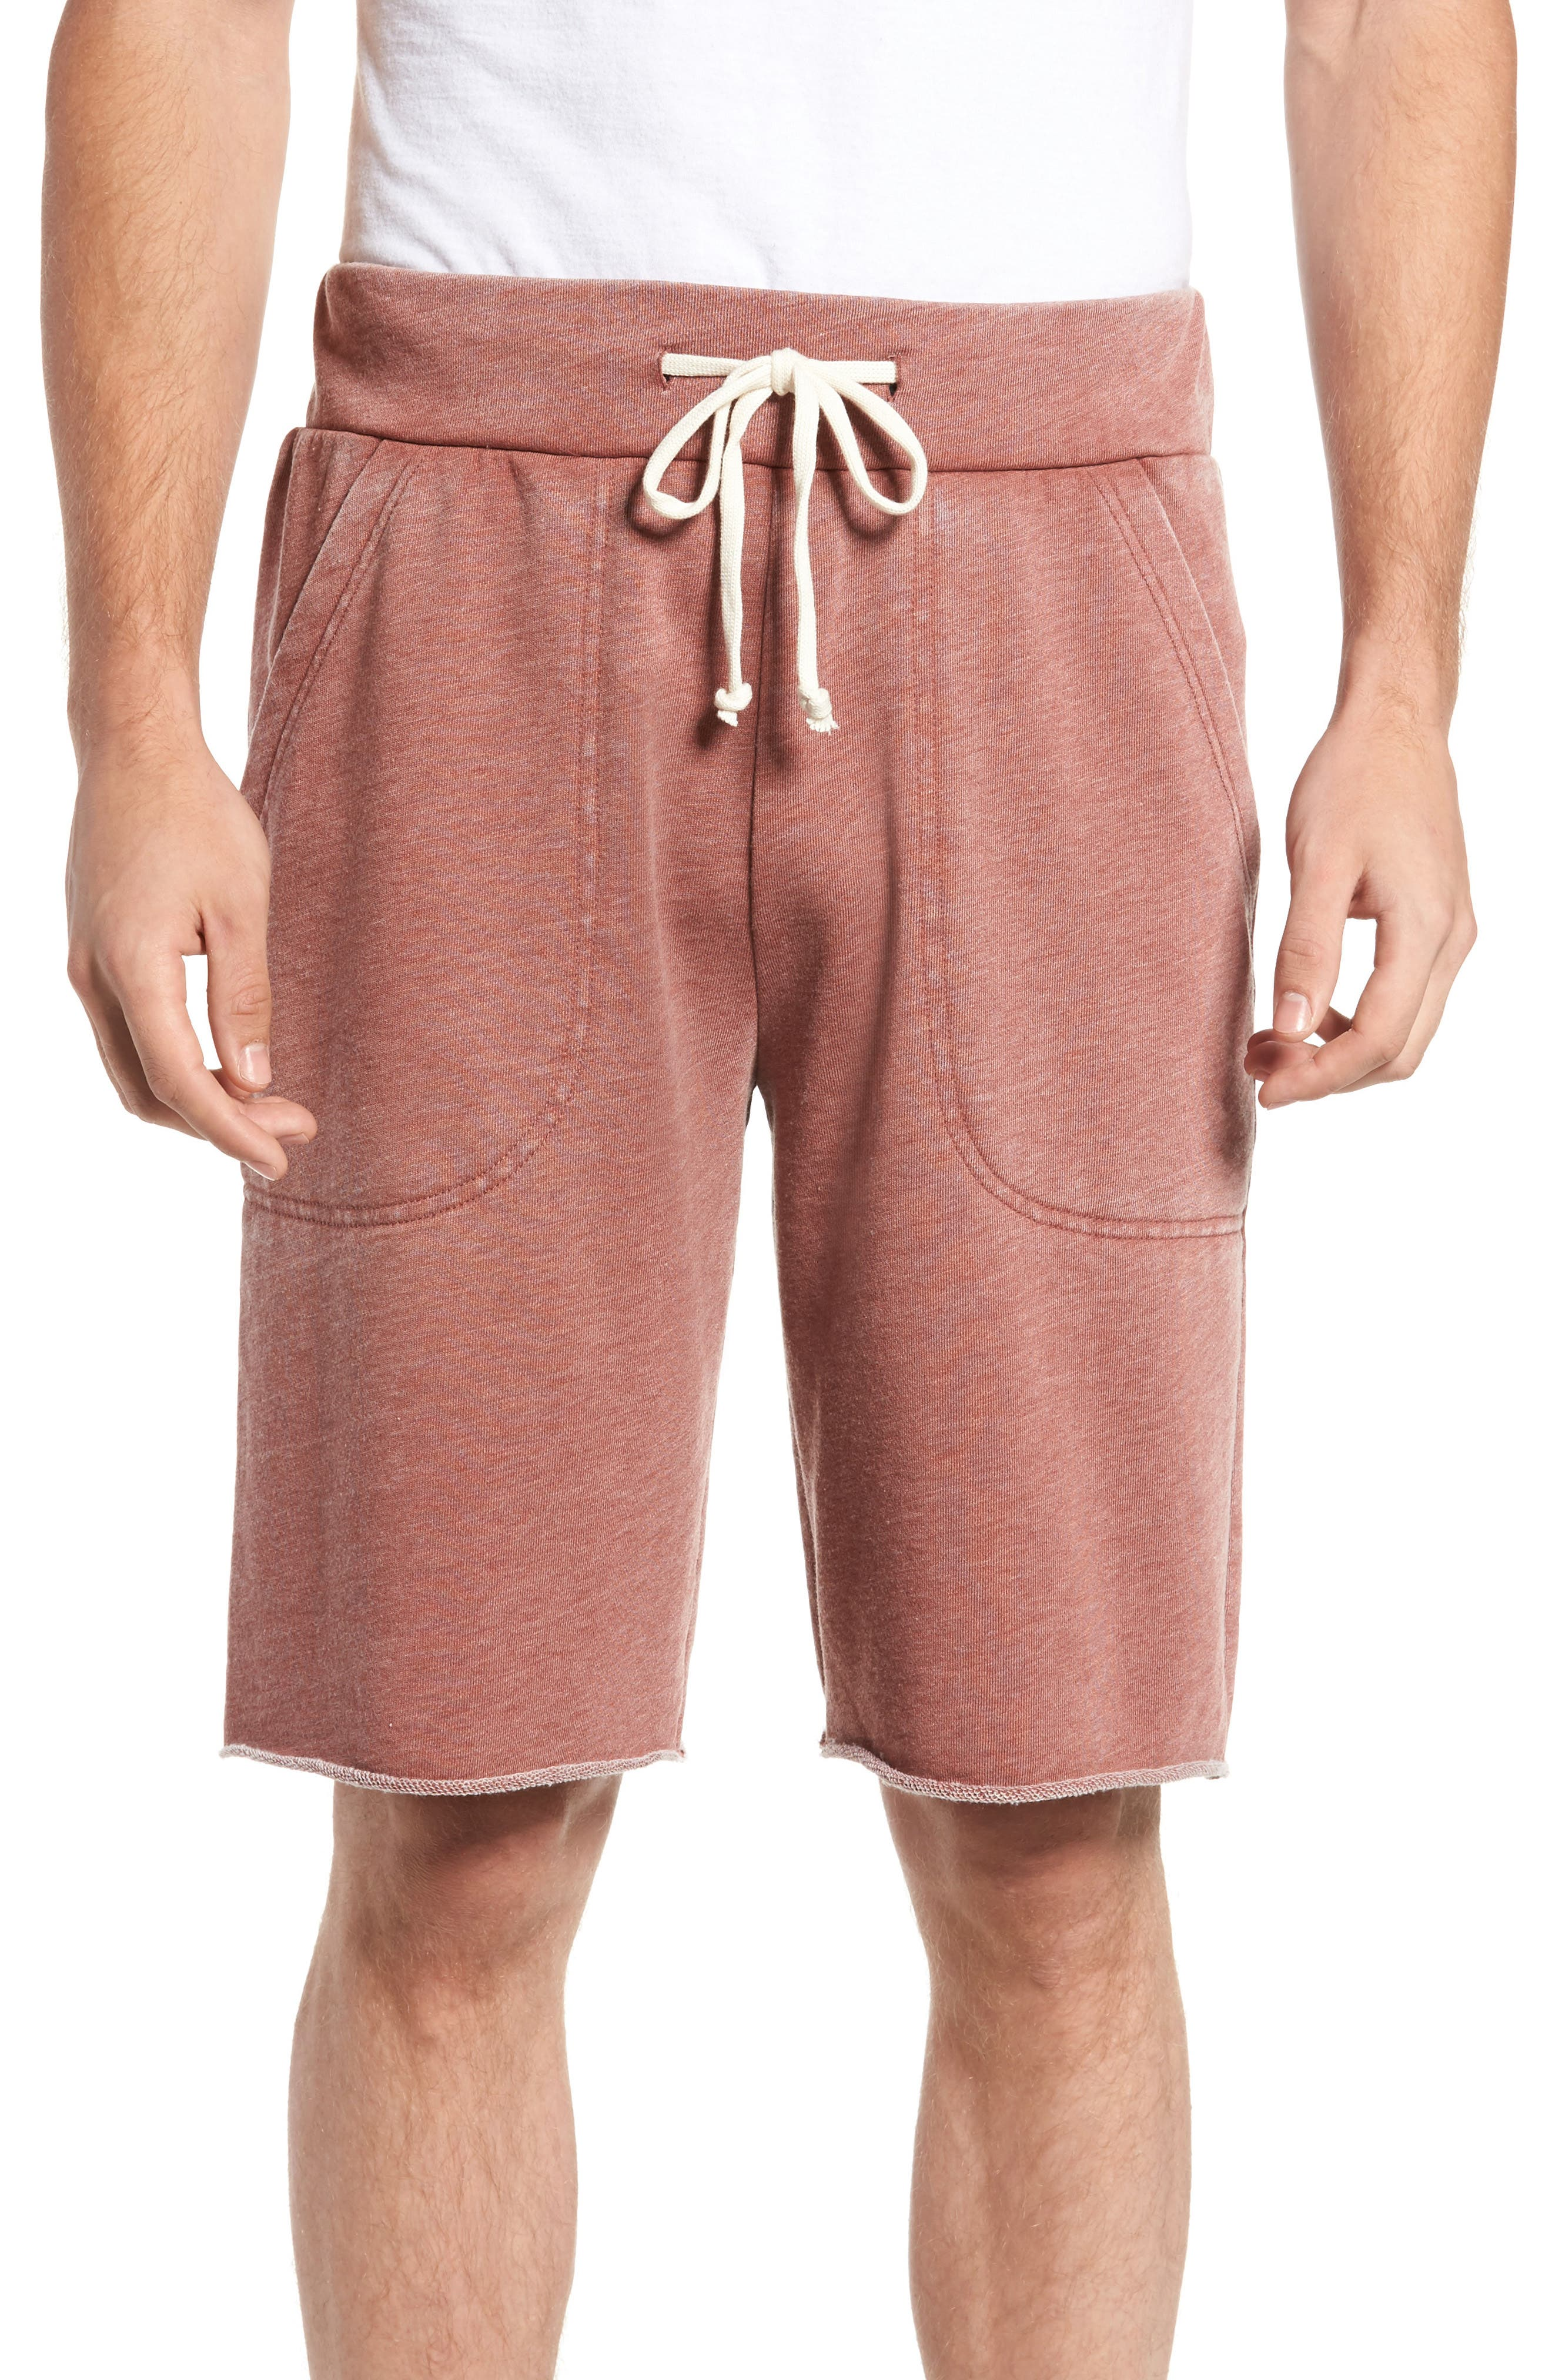 Main Image - Alternative 'Victory' French Terry Shorts